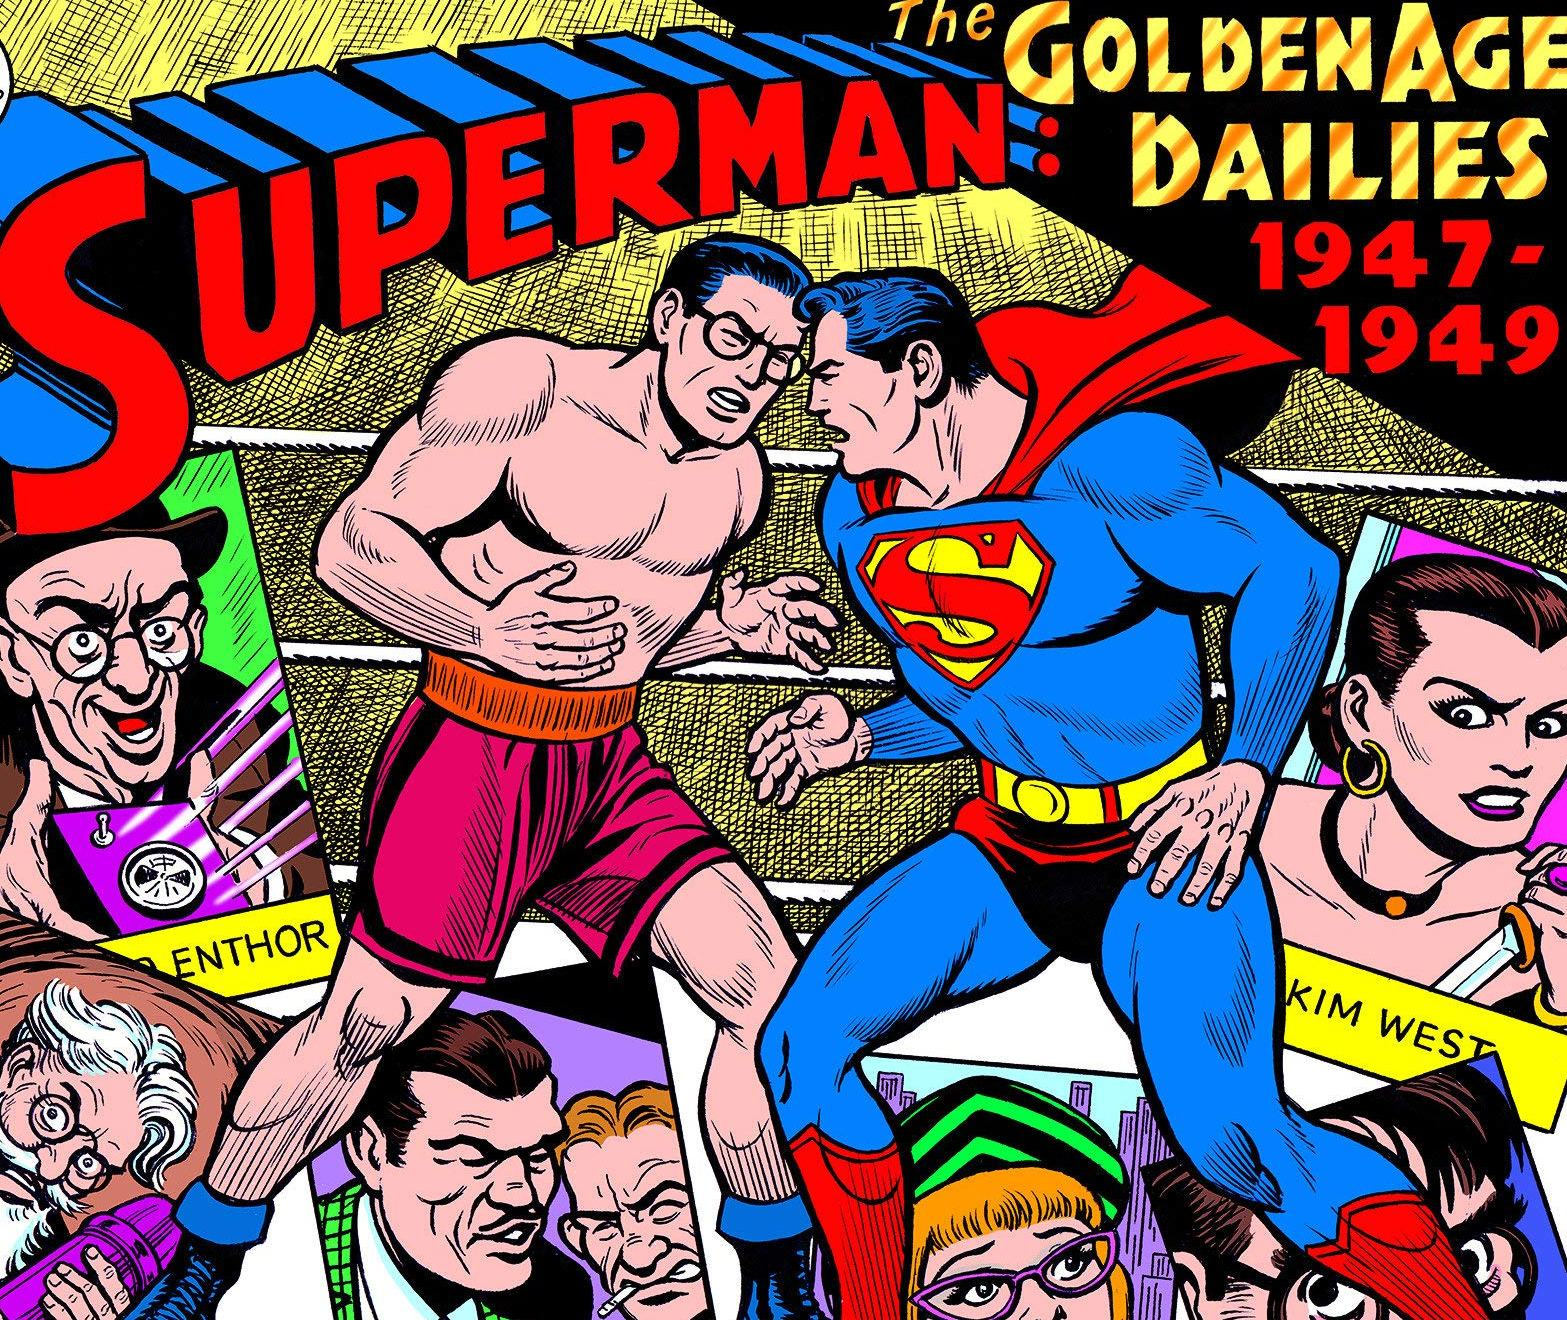 Superman Golden Age Newspaper Dailies 1947-49 review